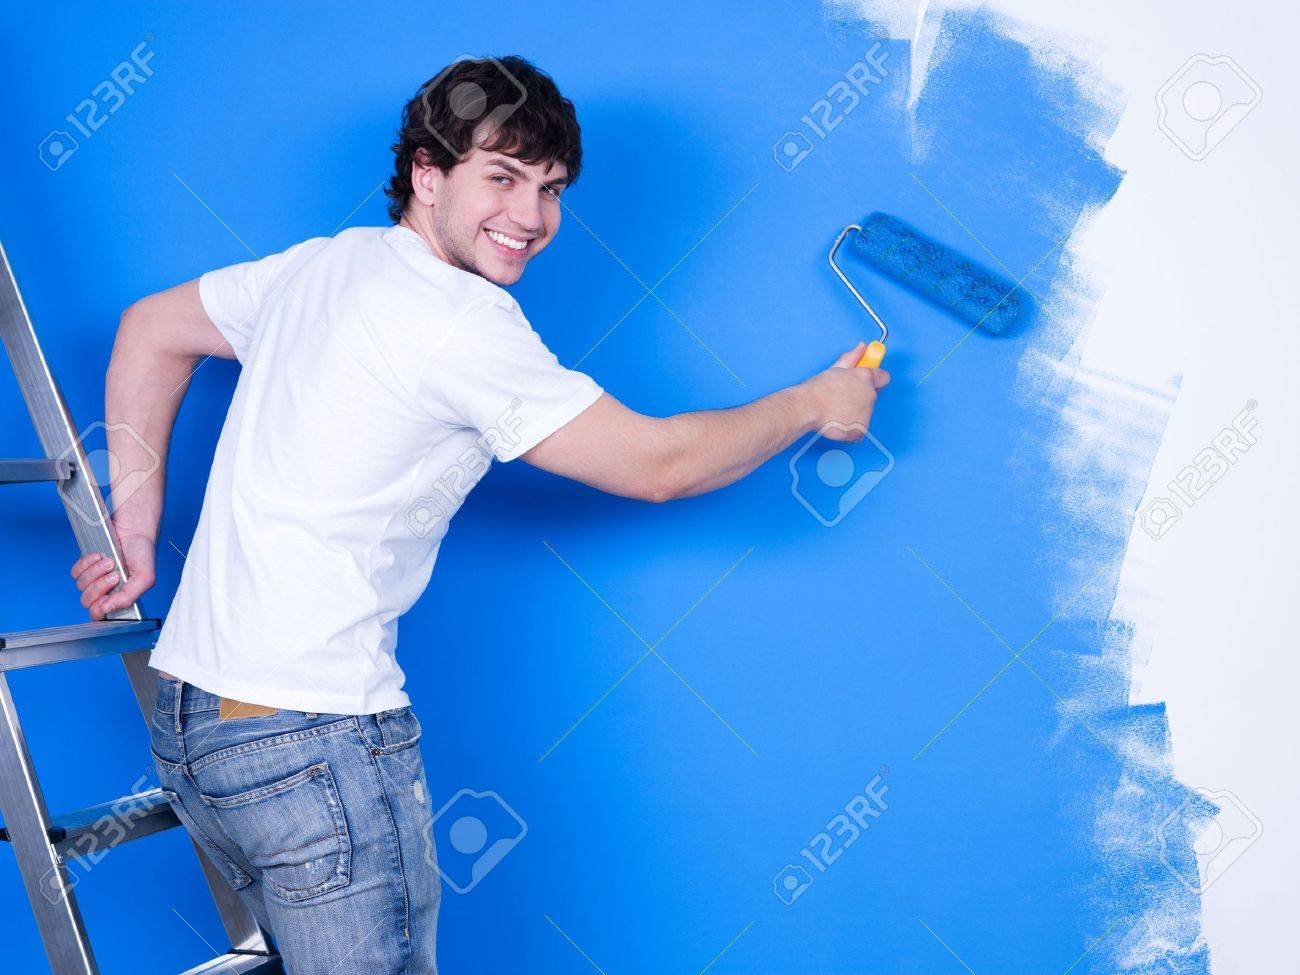 Person painting wall - Painting Wall Handsome Young Man With Happy Smile Painting The Wall